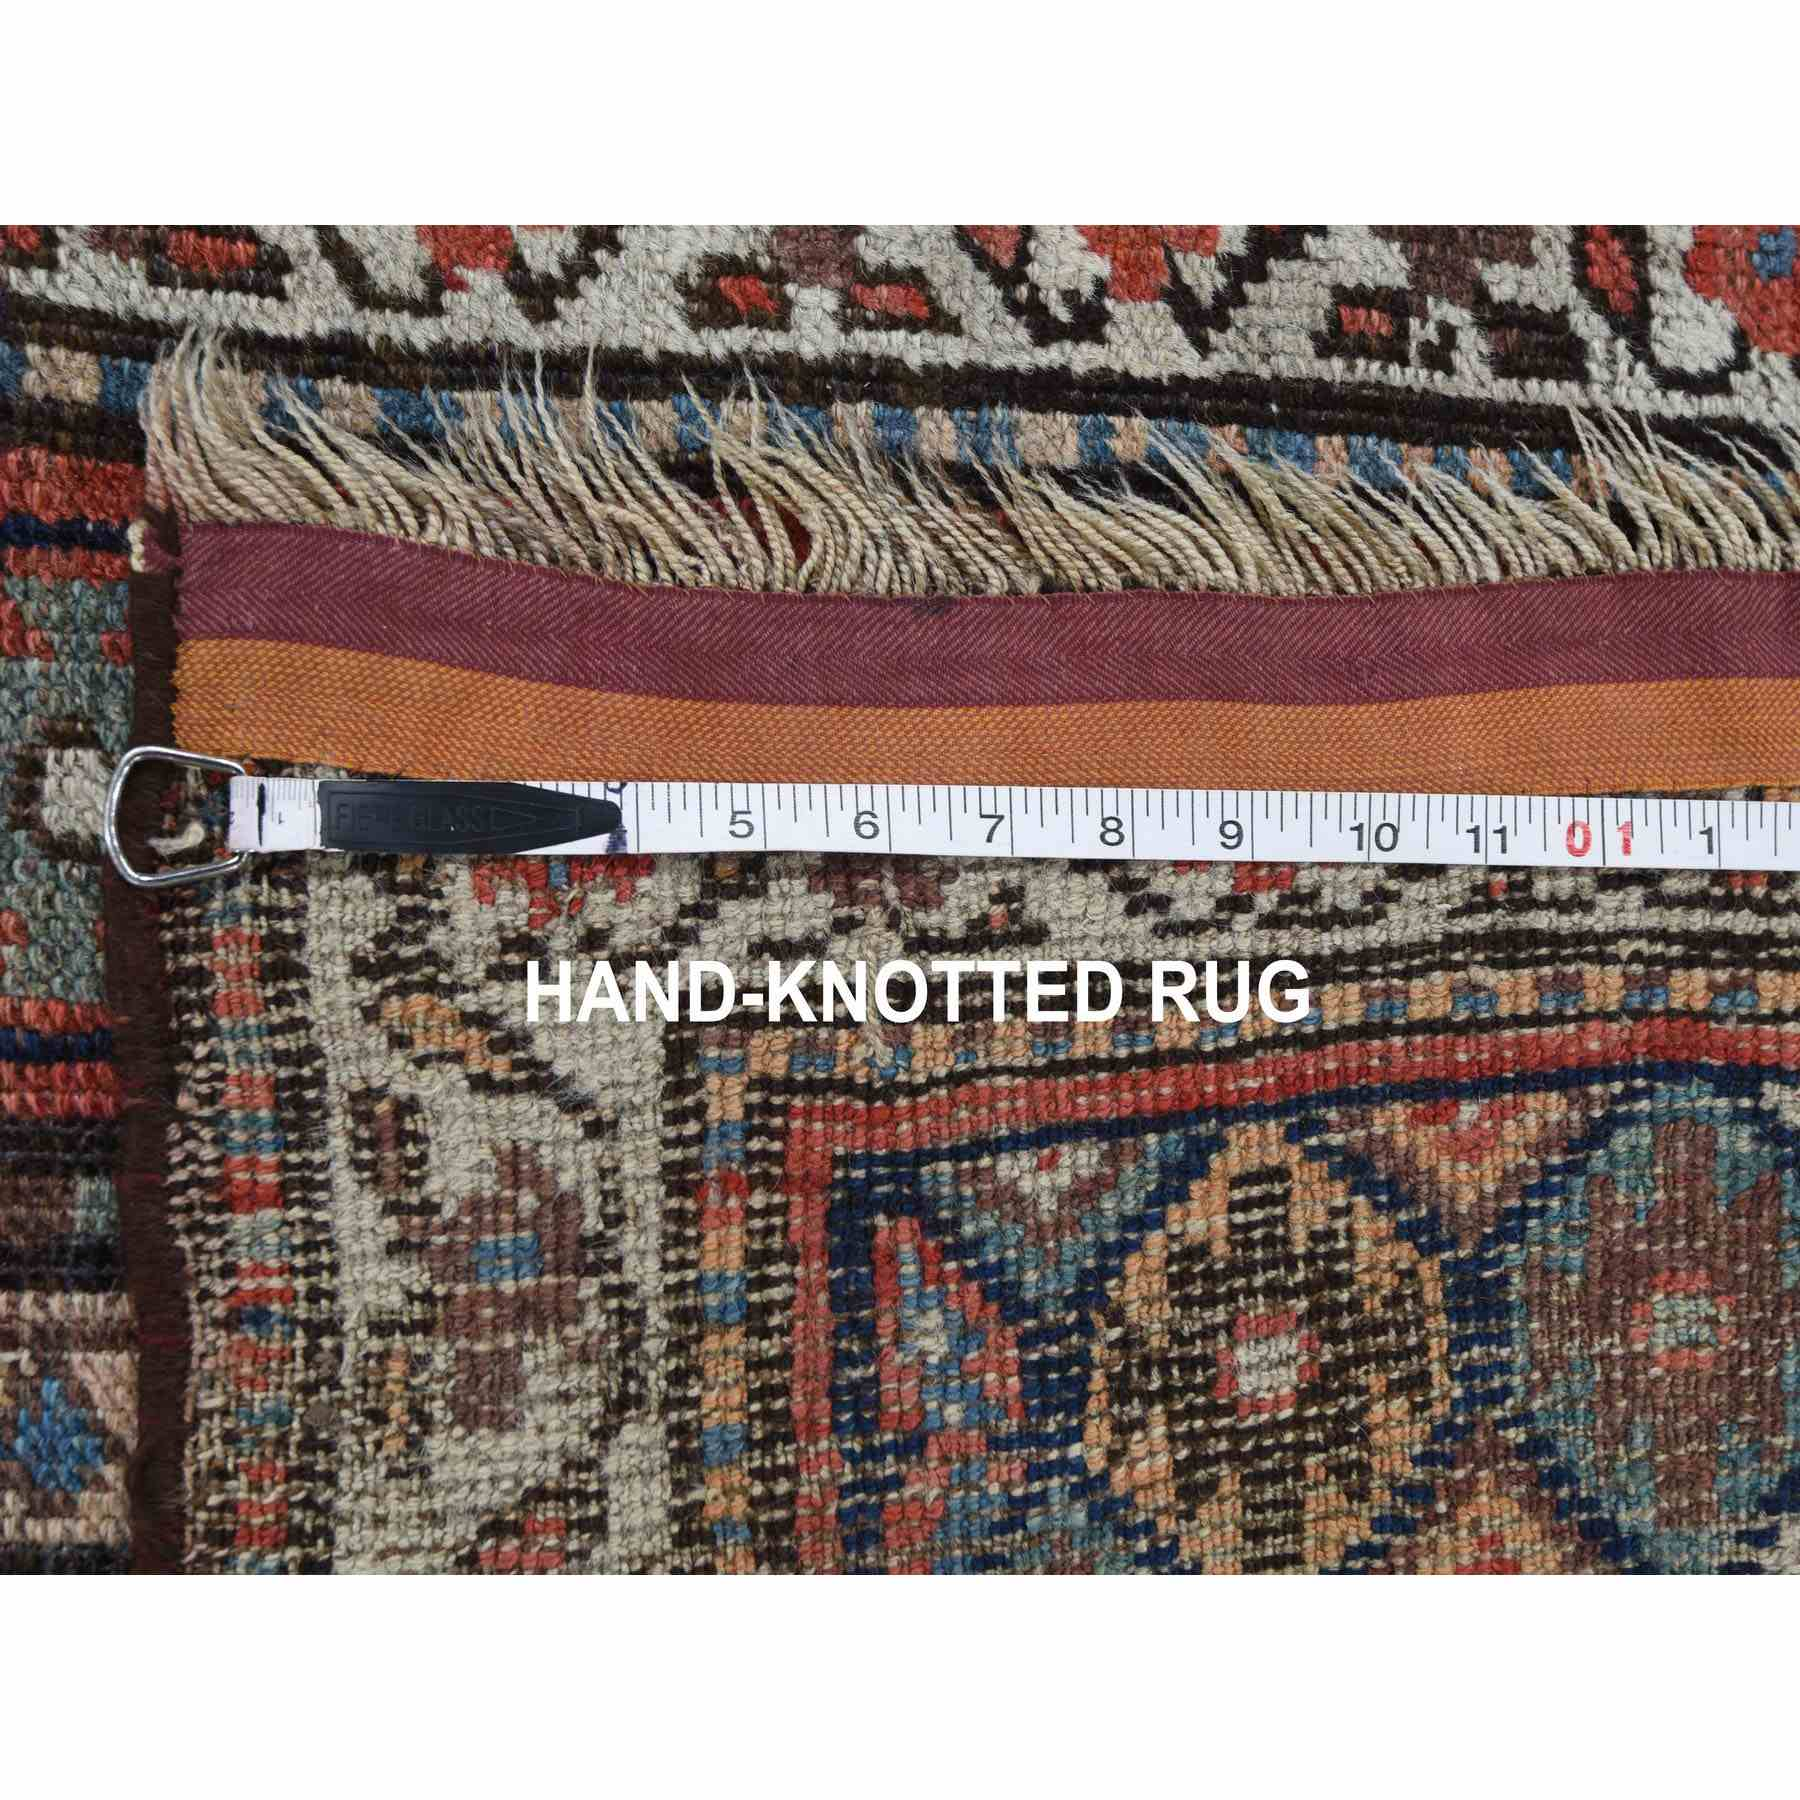 Antique-Hand-Knotted-Rug-242430